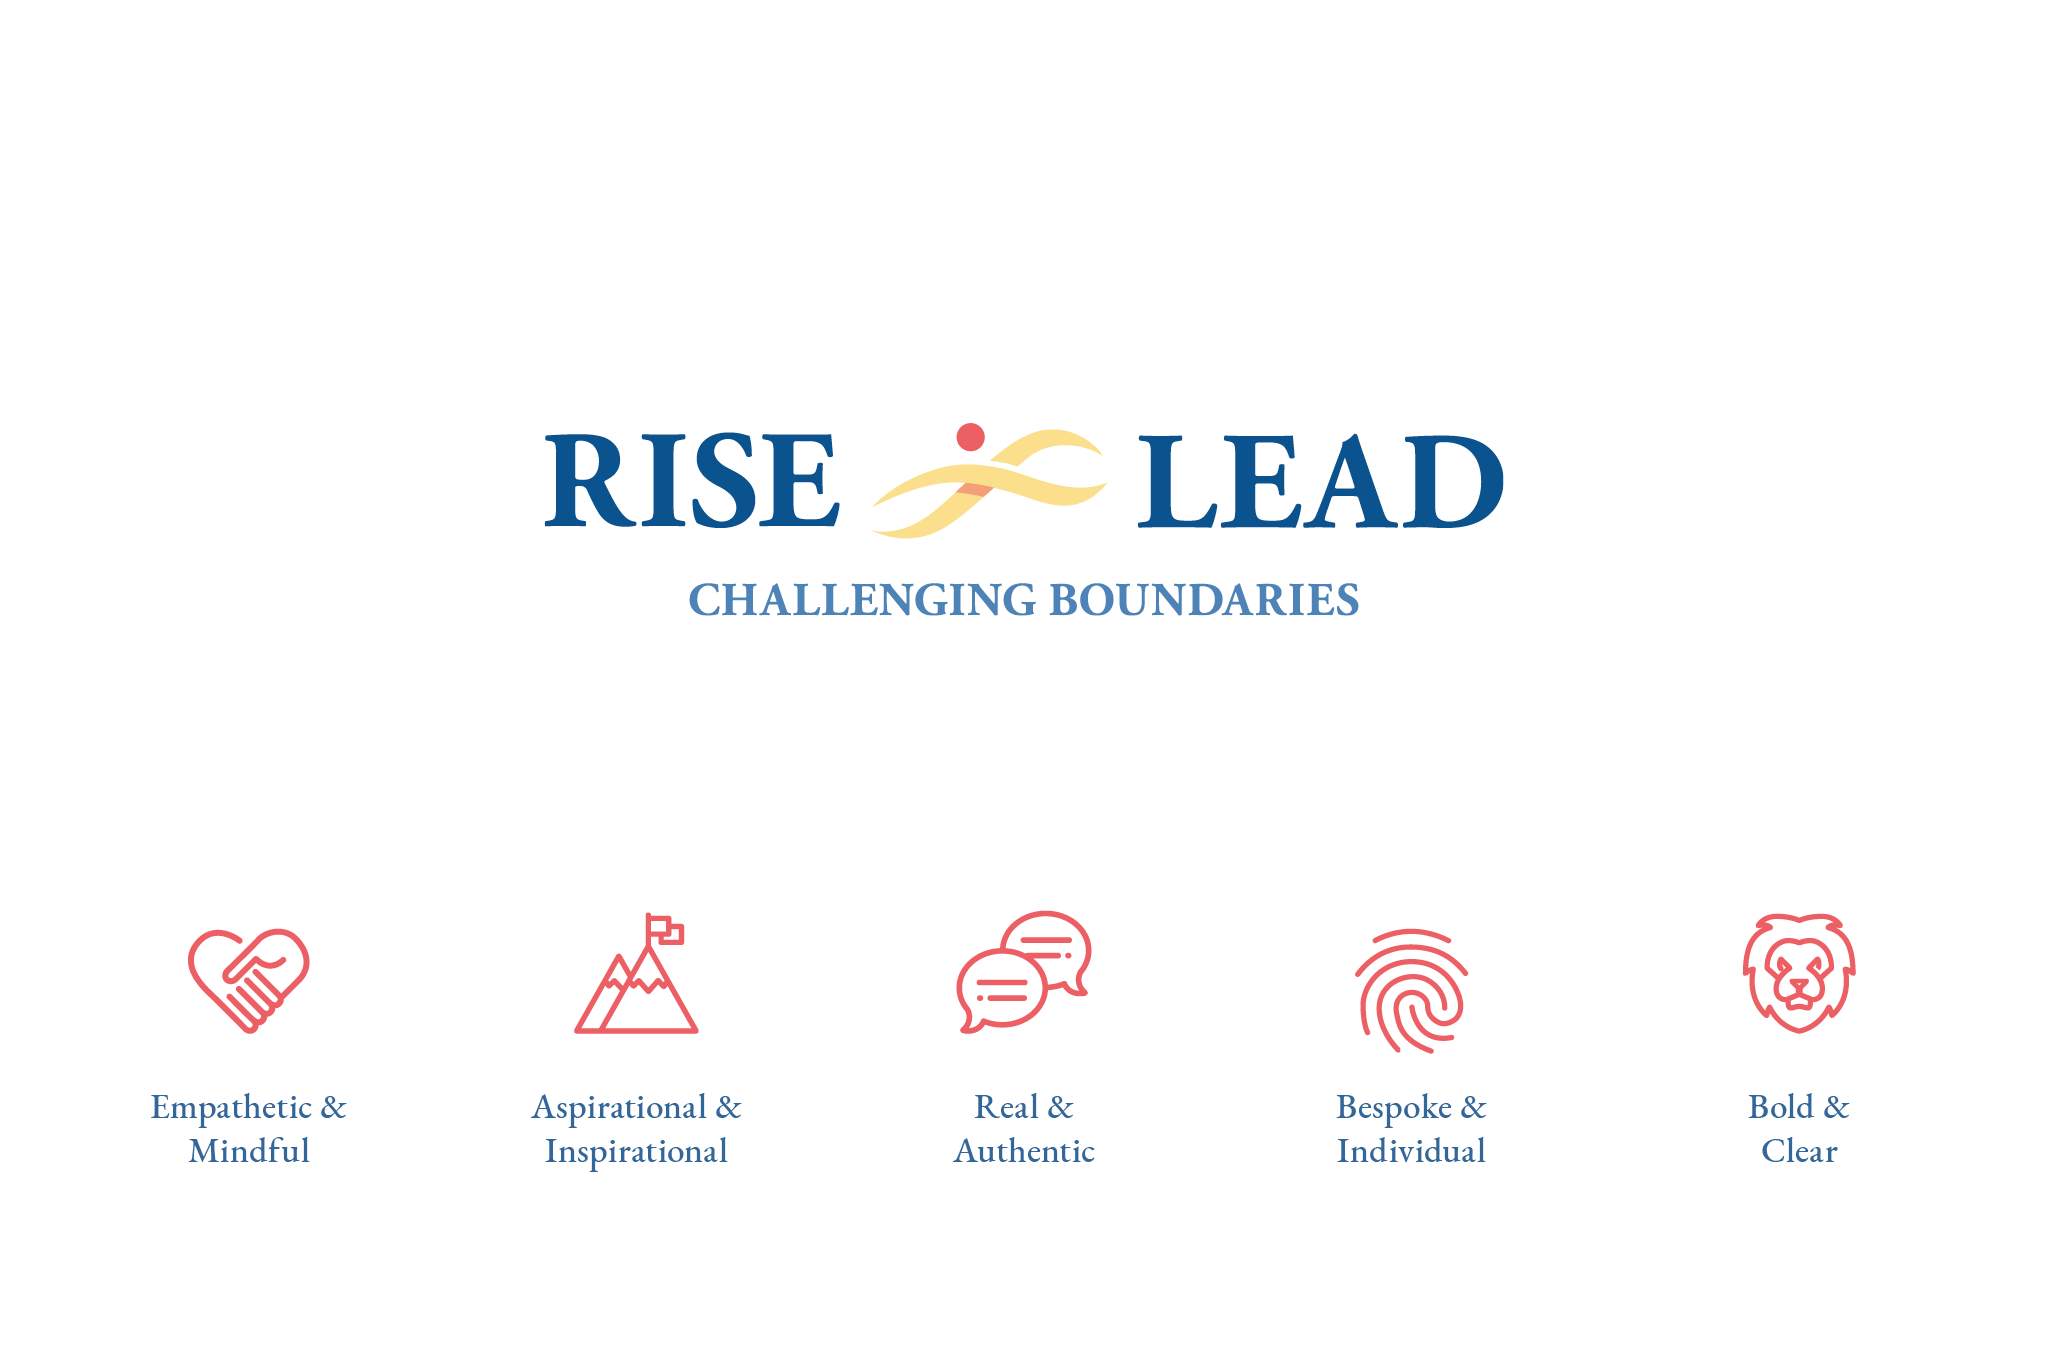 Rise & Lead Brand Identity & Values